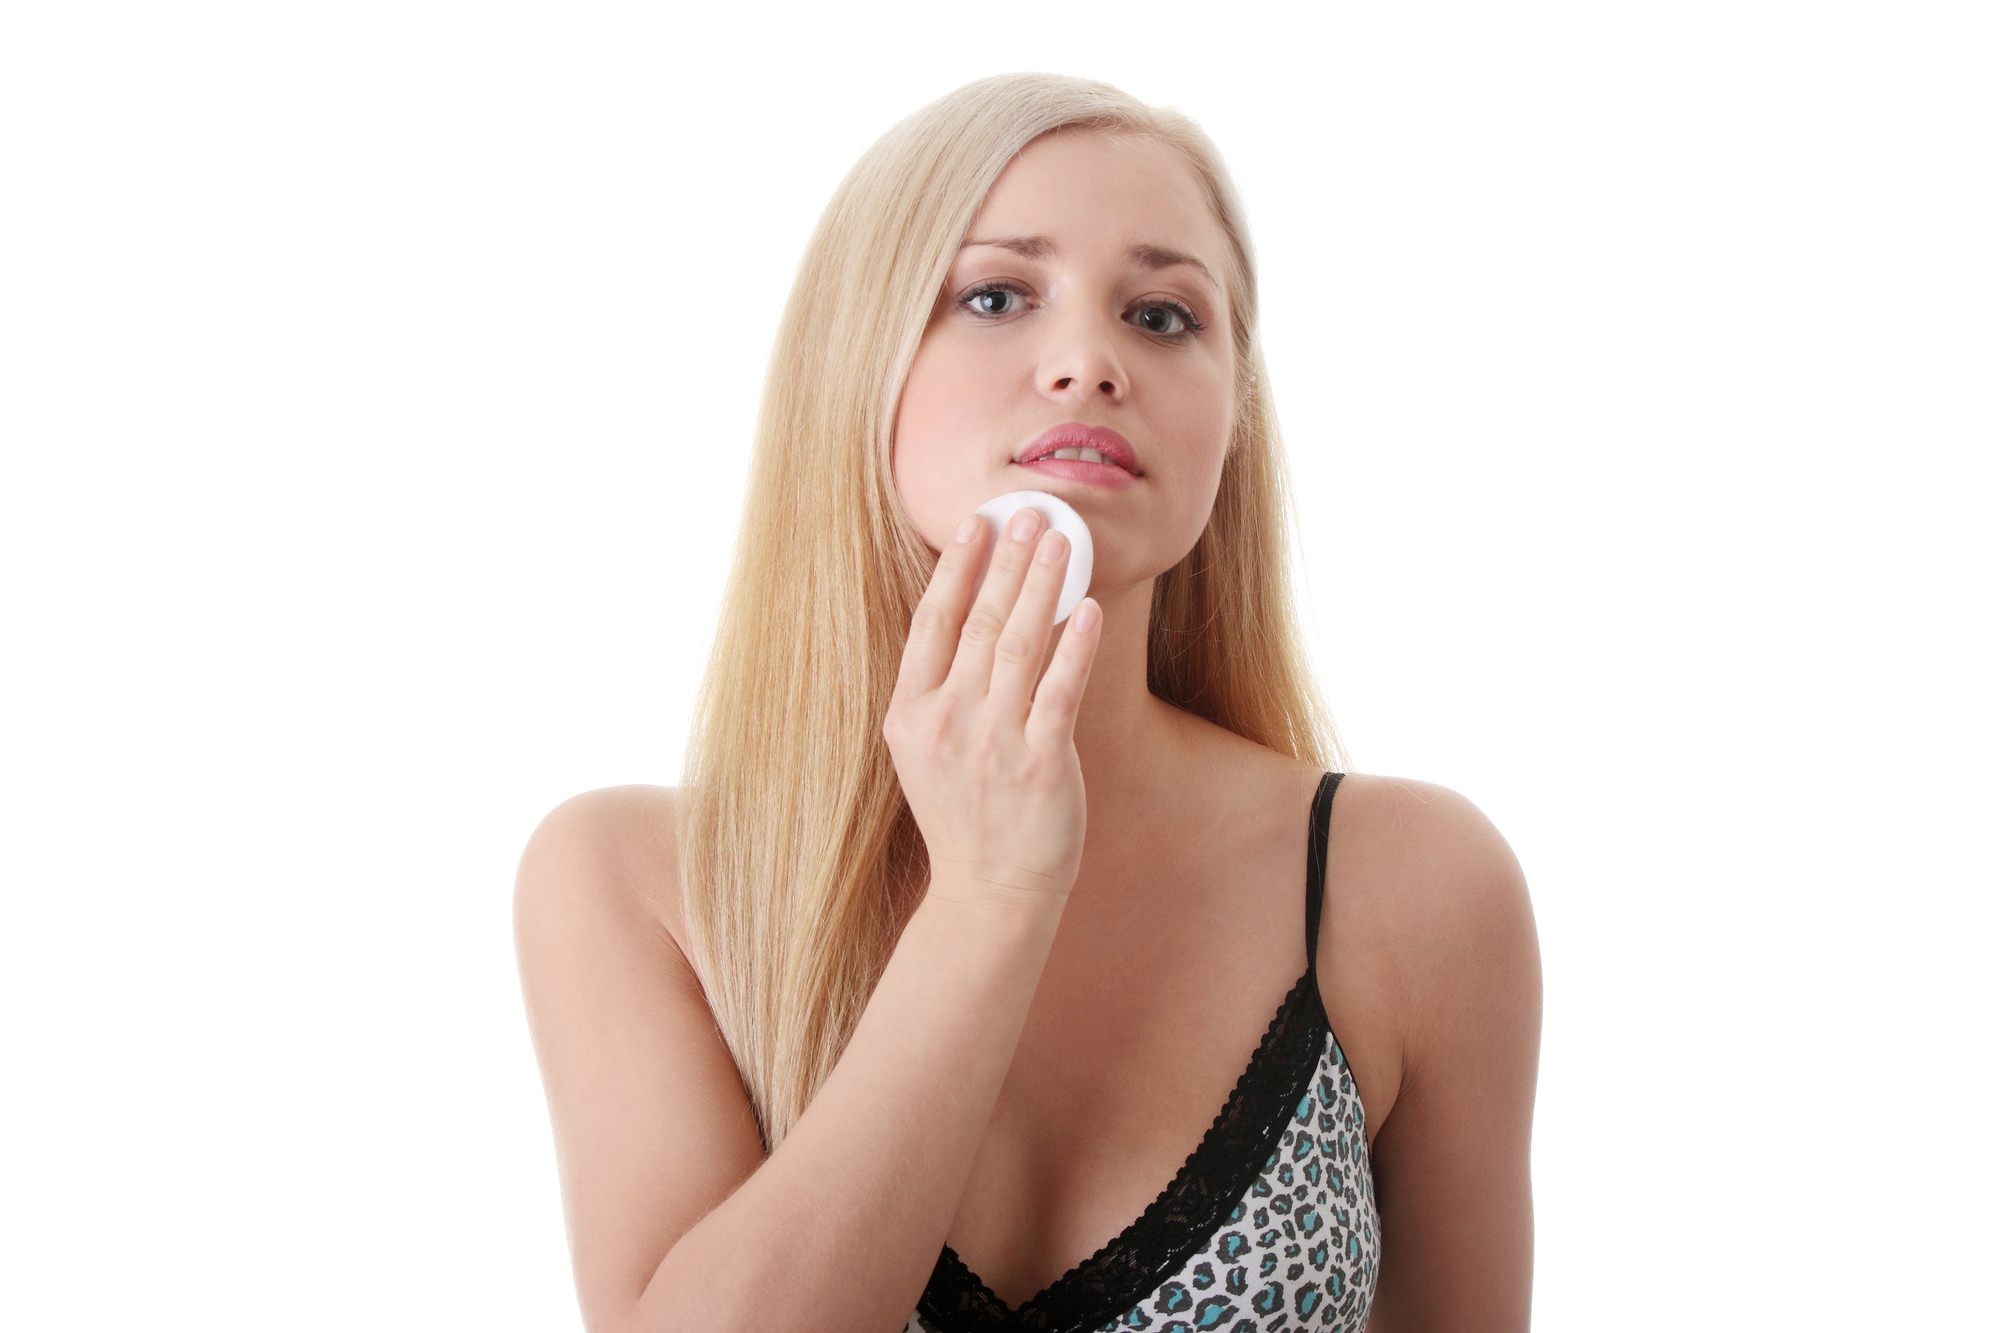 Young blond woman applying face cotton pads. Isolated on white background